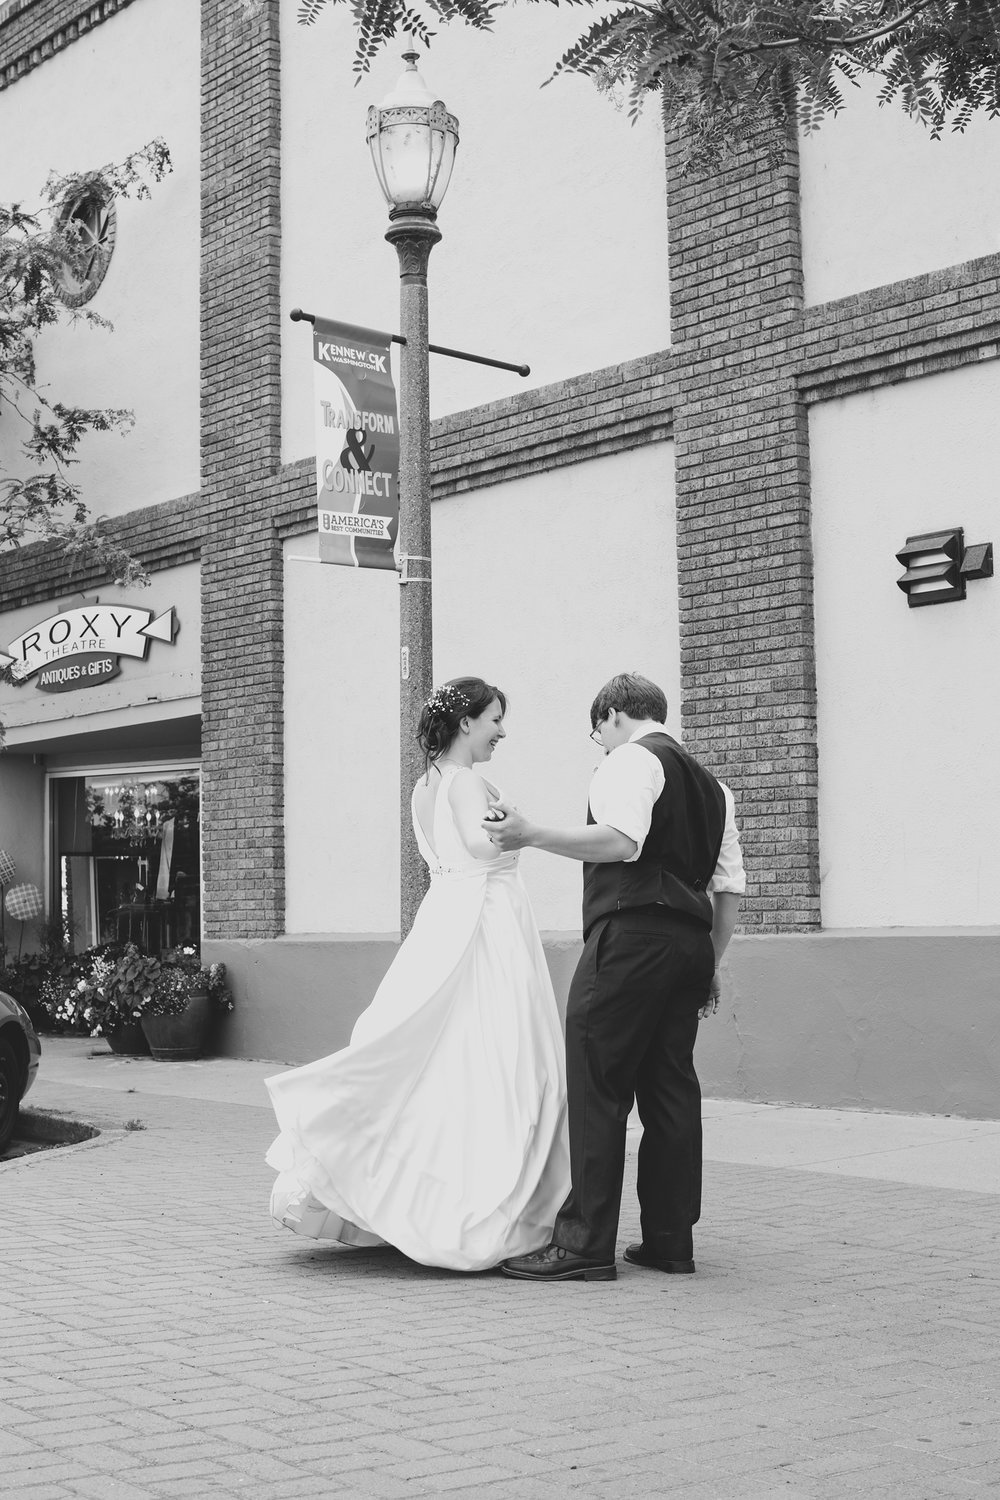 Tri Cities Wedding Photographer_Karis and Adrienne_Church wedding_ Downtown Kennewick 7_Bride and groom dancing